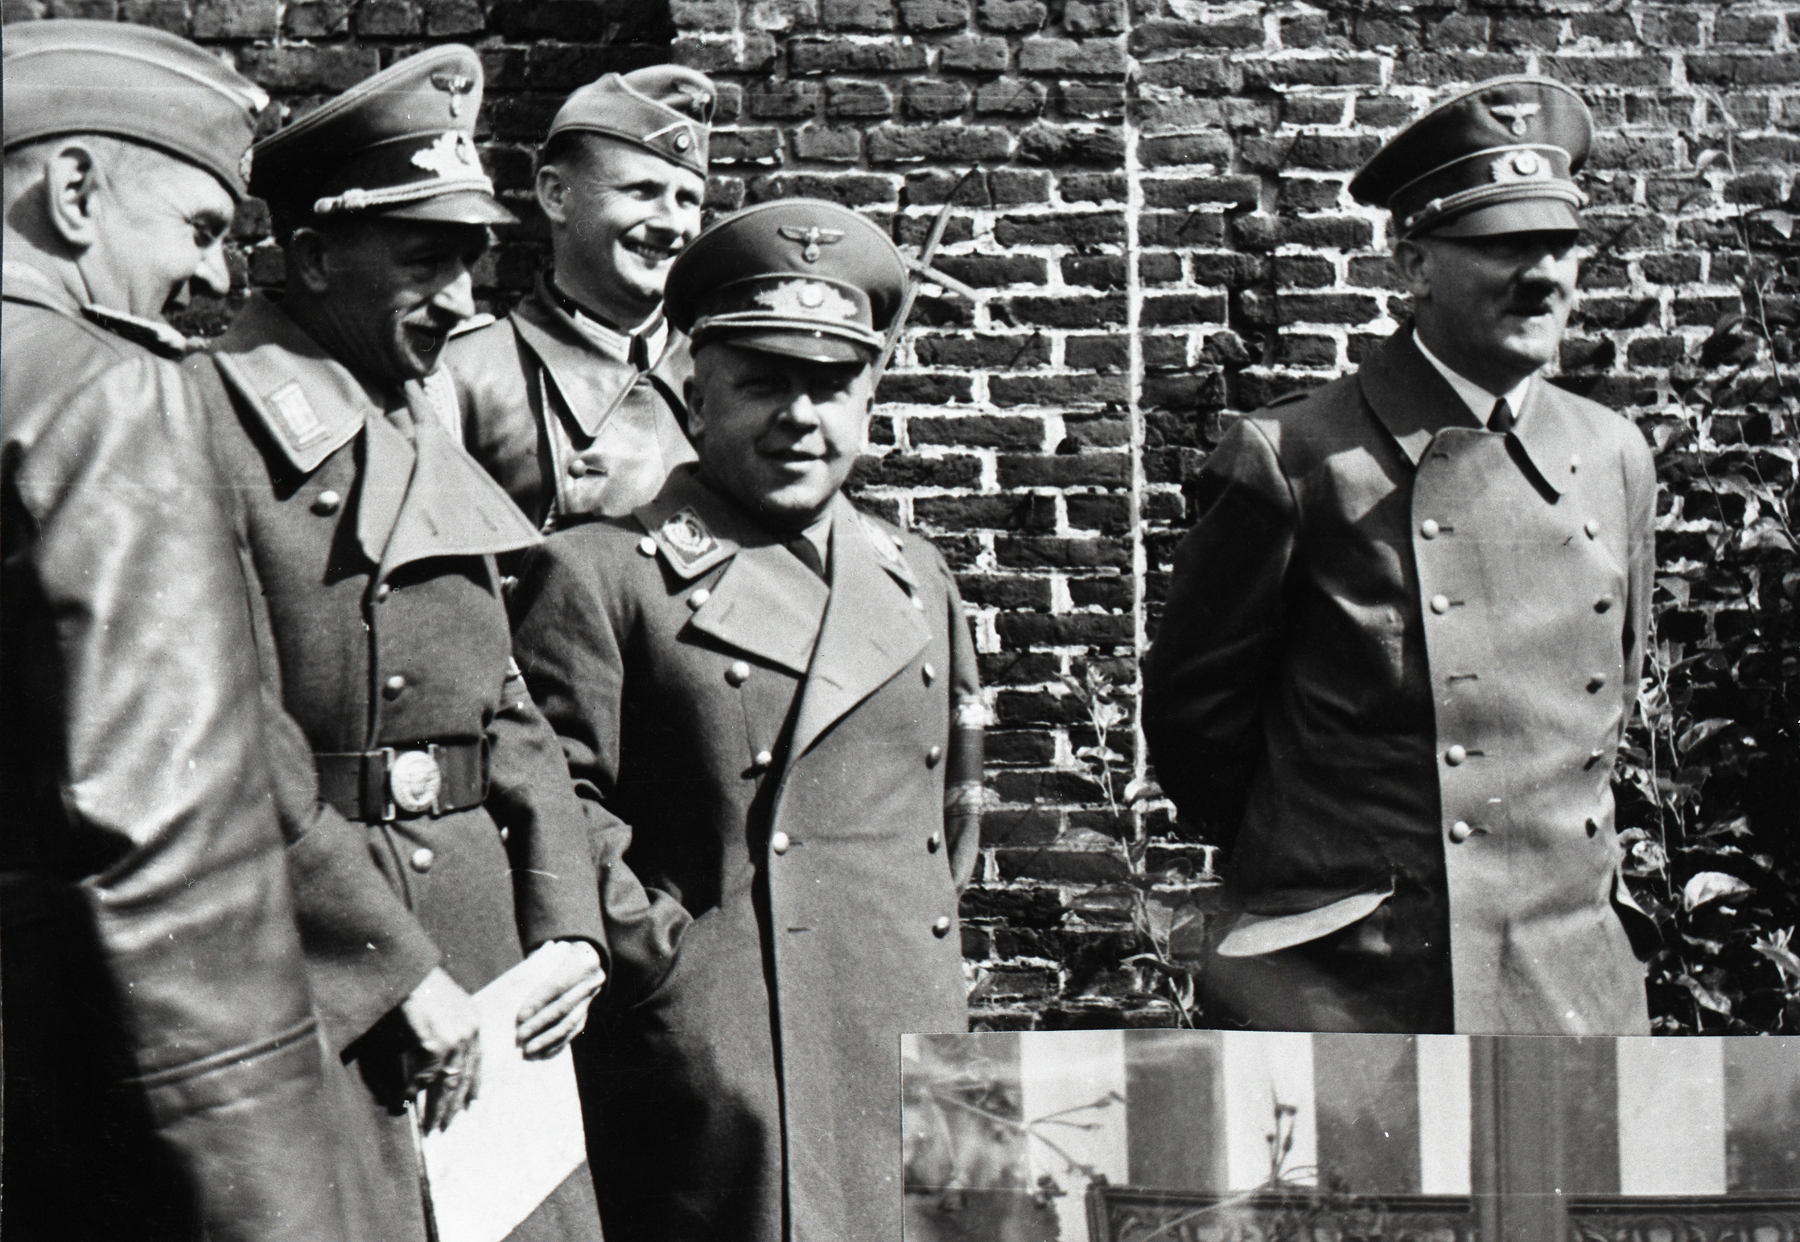 Max Amann, Ernst Schmidt and Adolf Hitler at their former regiment building in Fournes en Weppes, from Eva Braun's albums